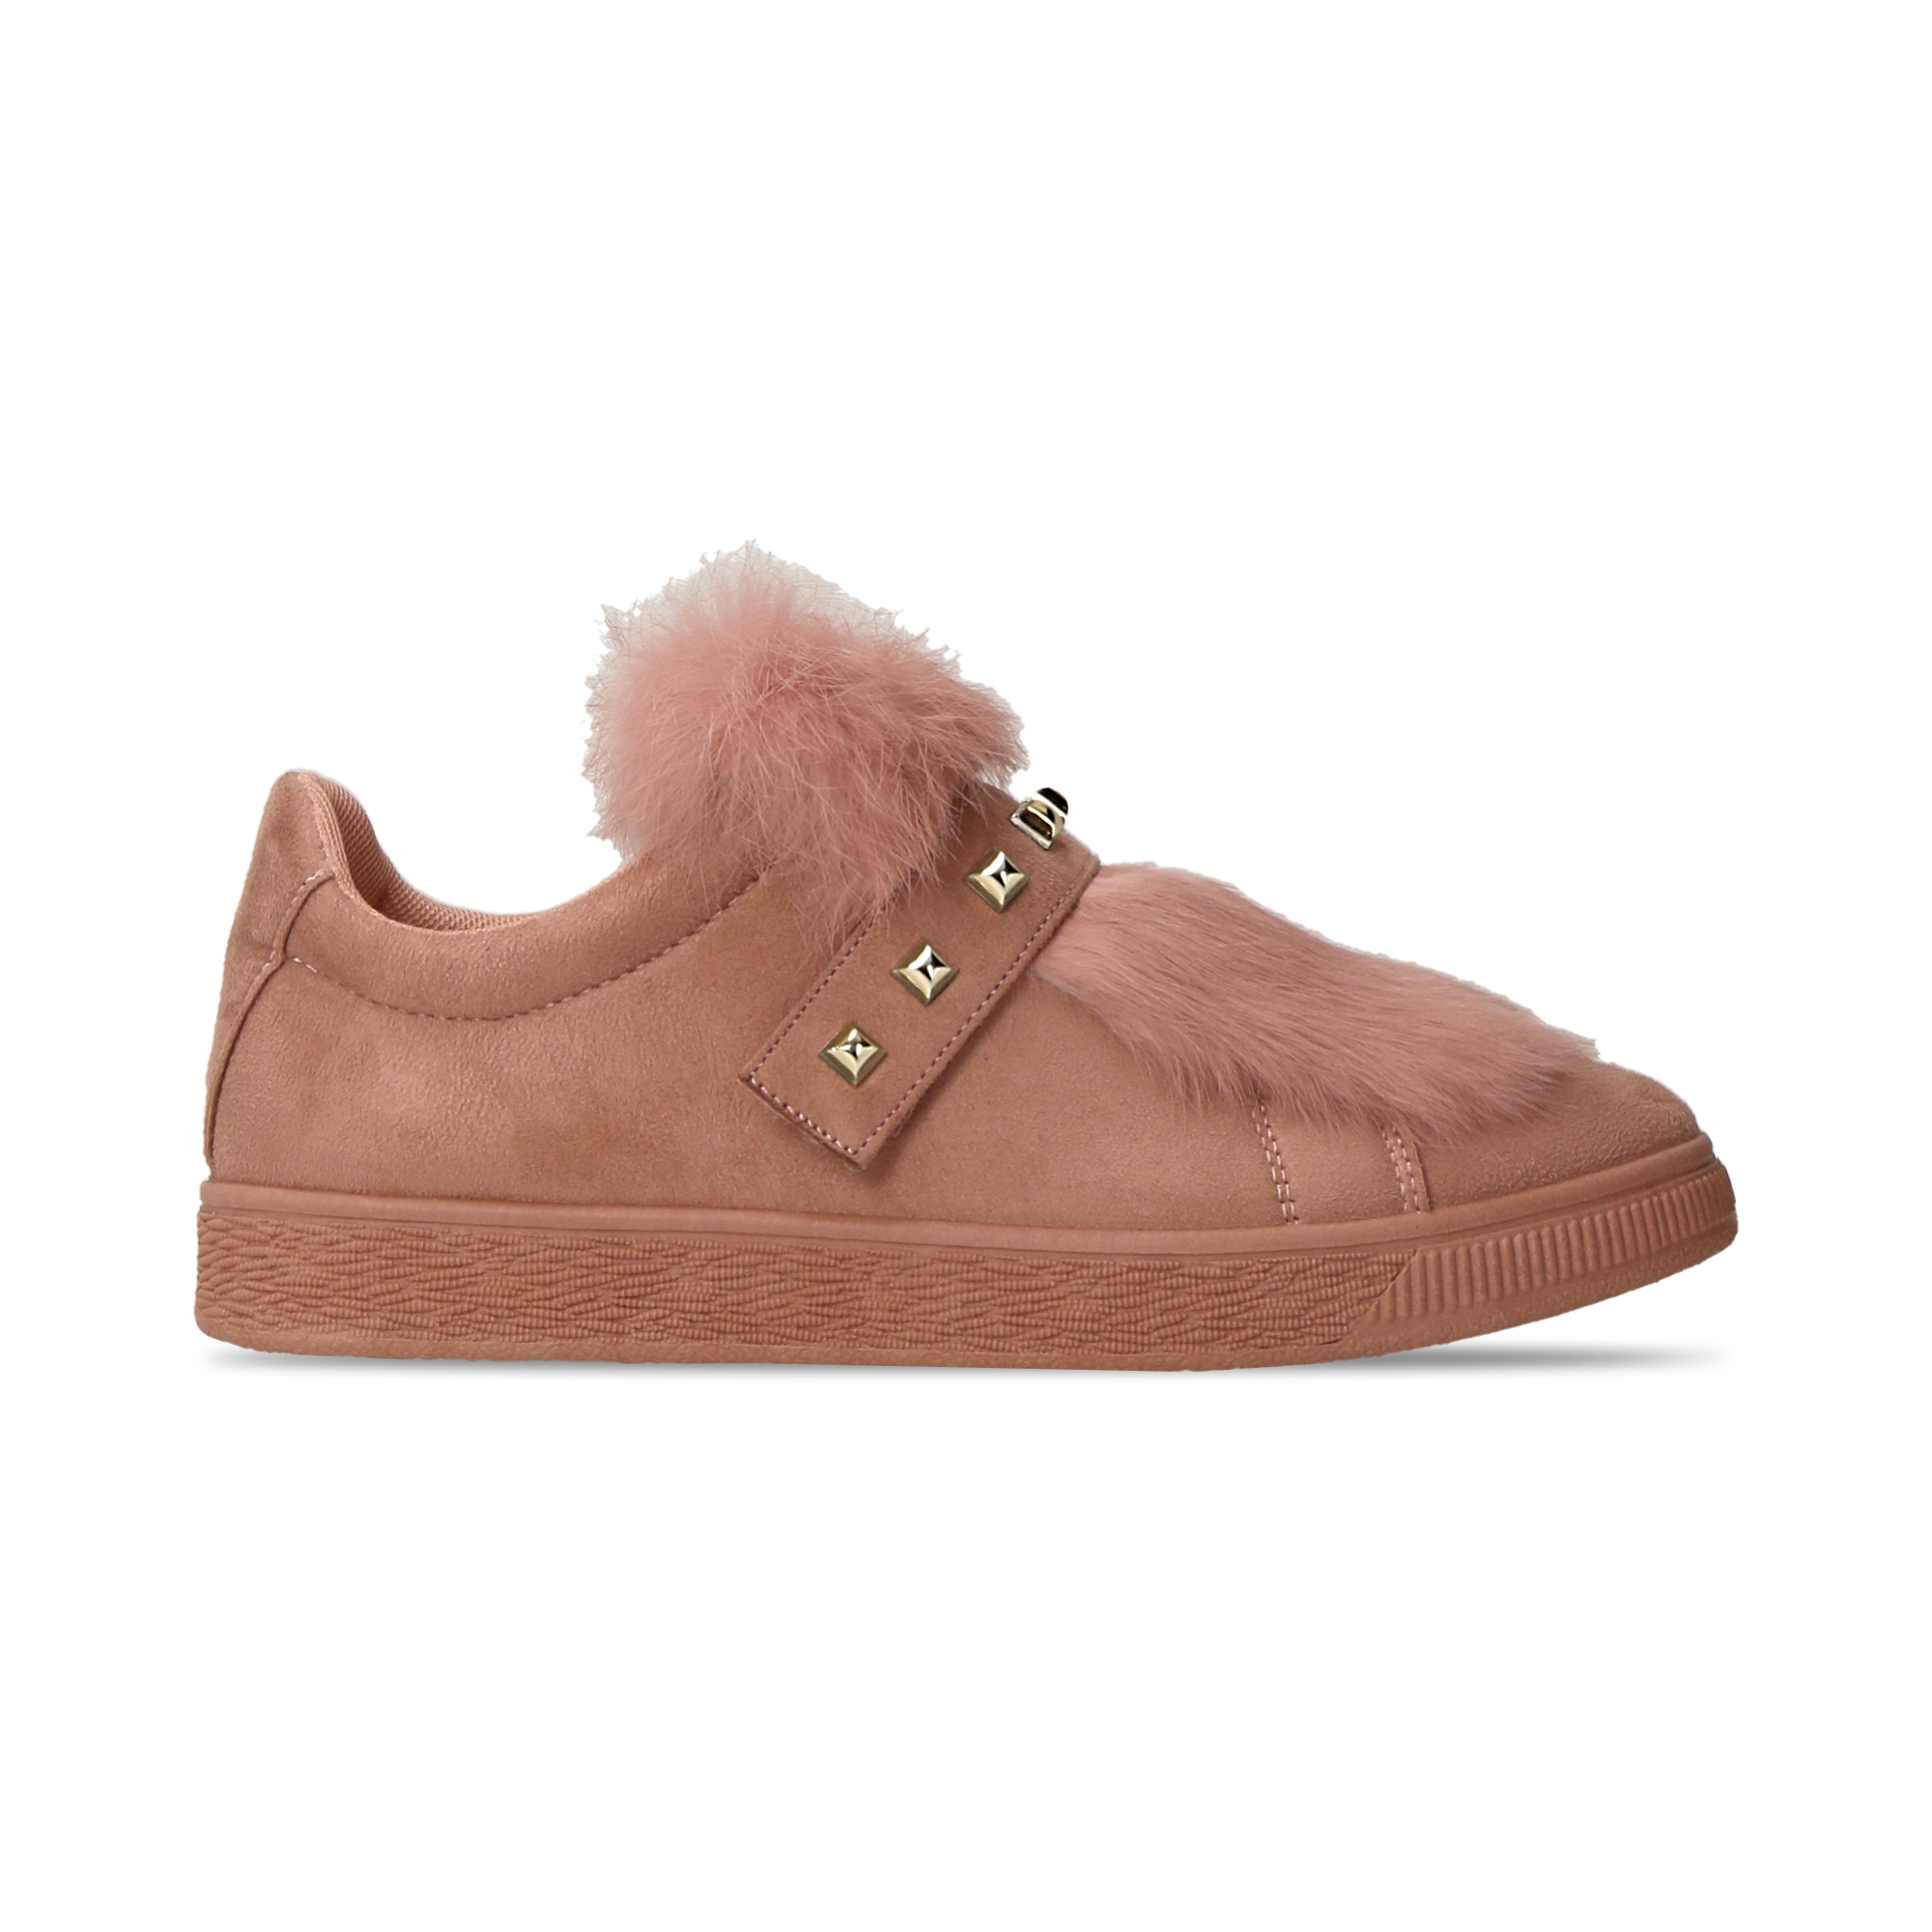 Sneakers rosa nude slip-on con dettagli faux-fur e borchie